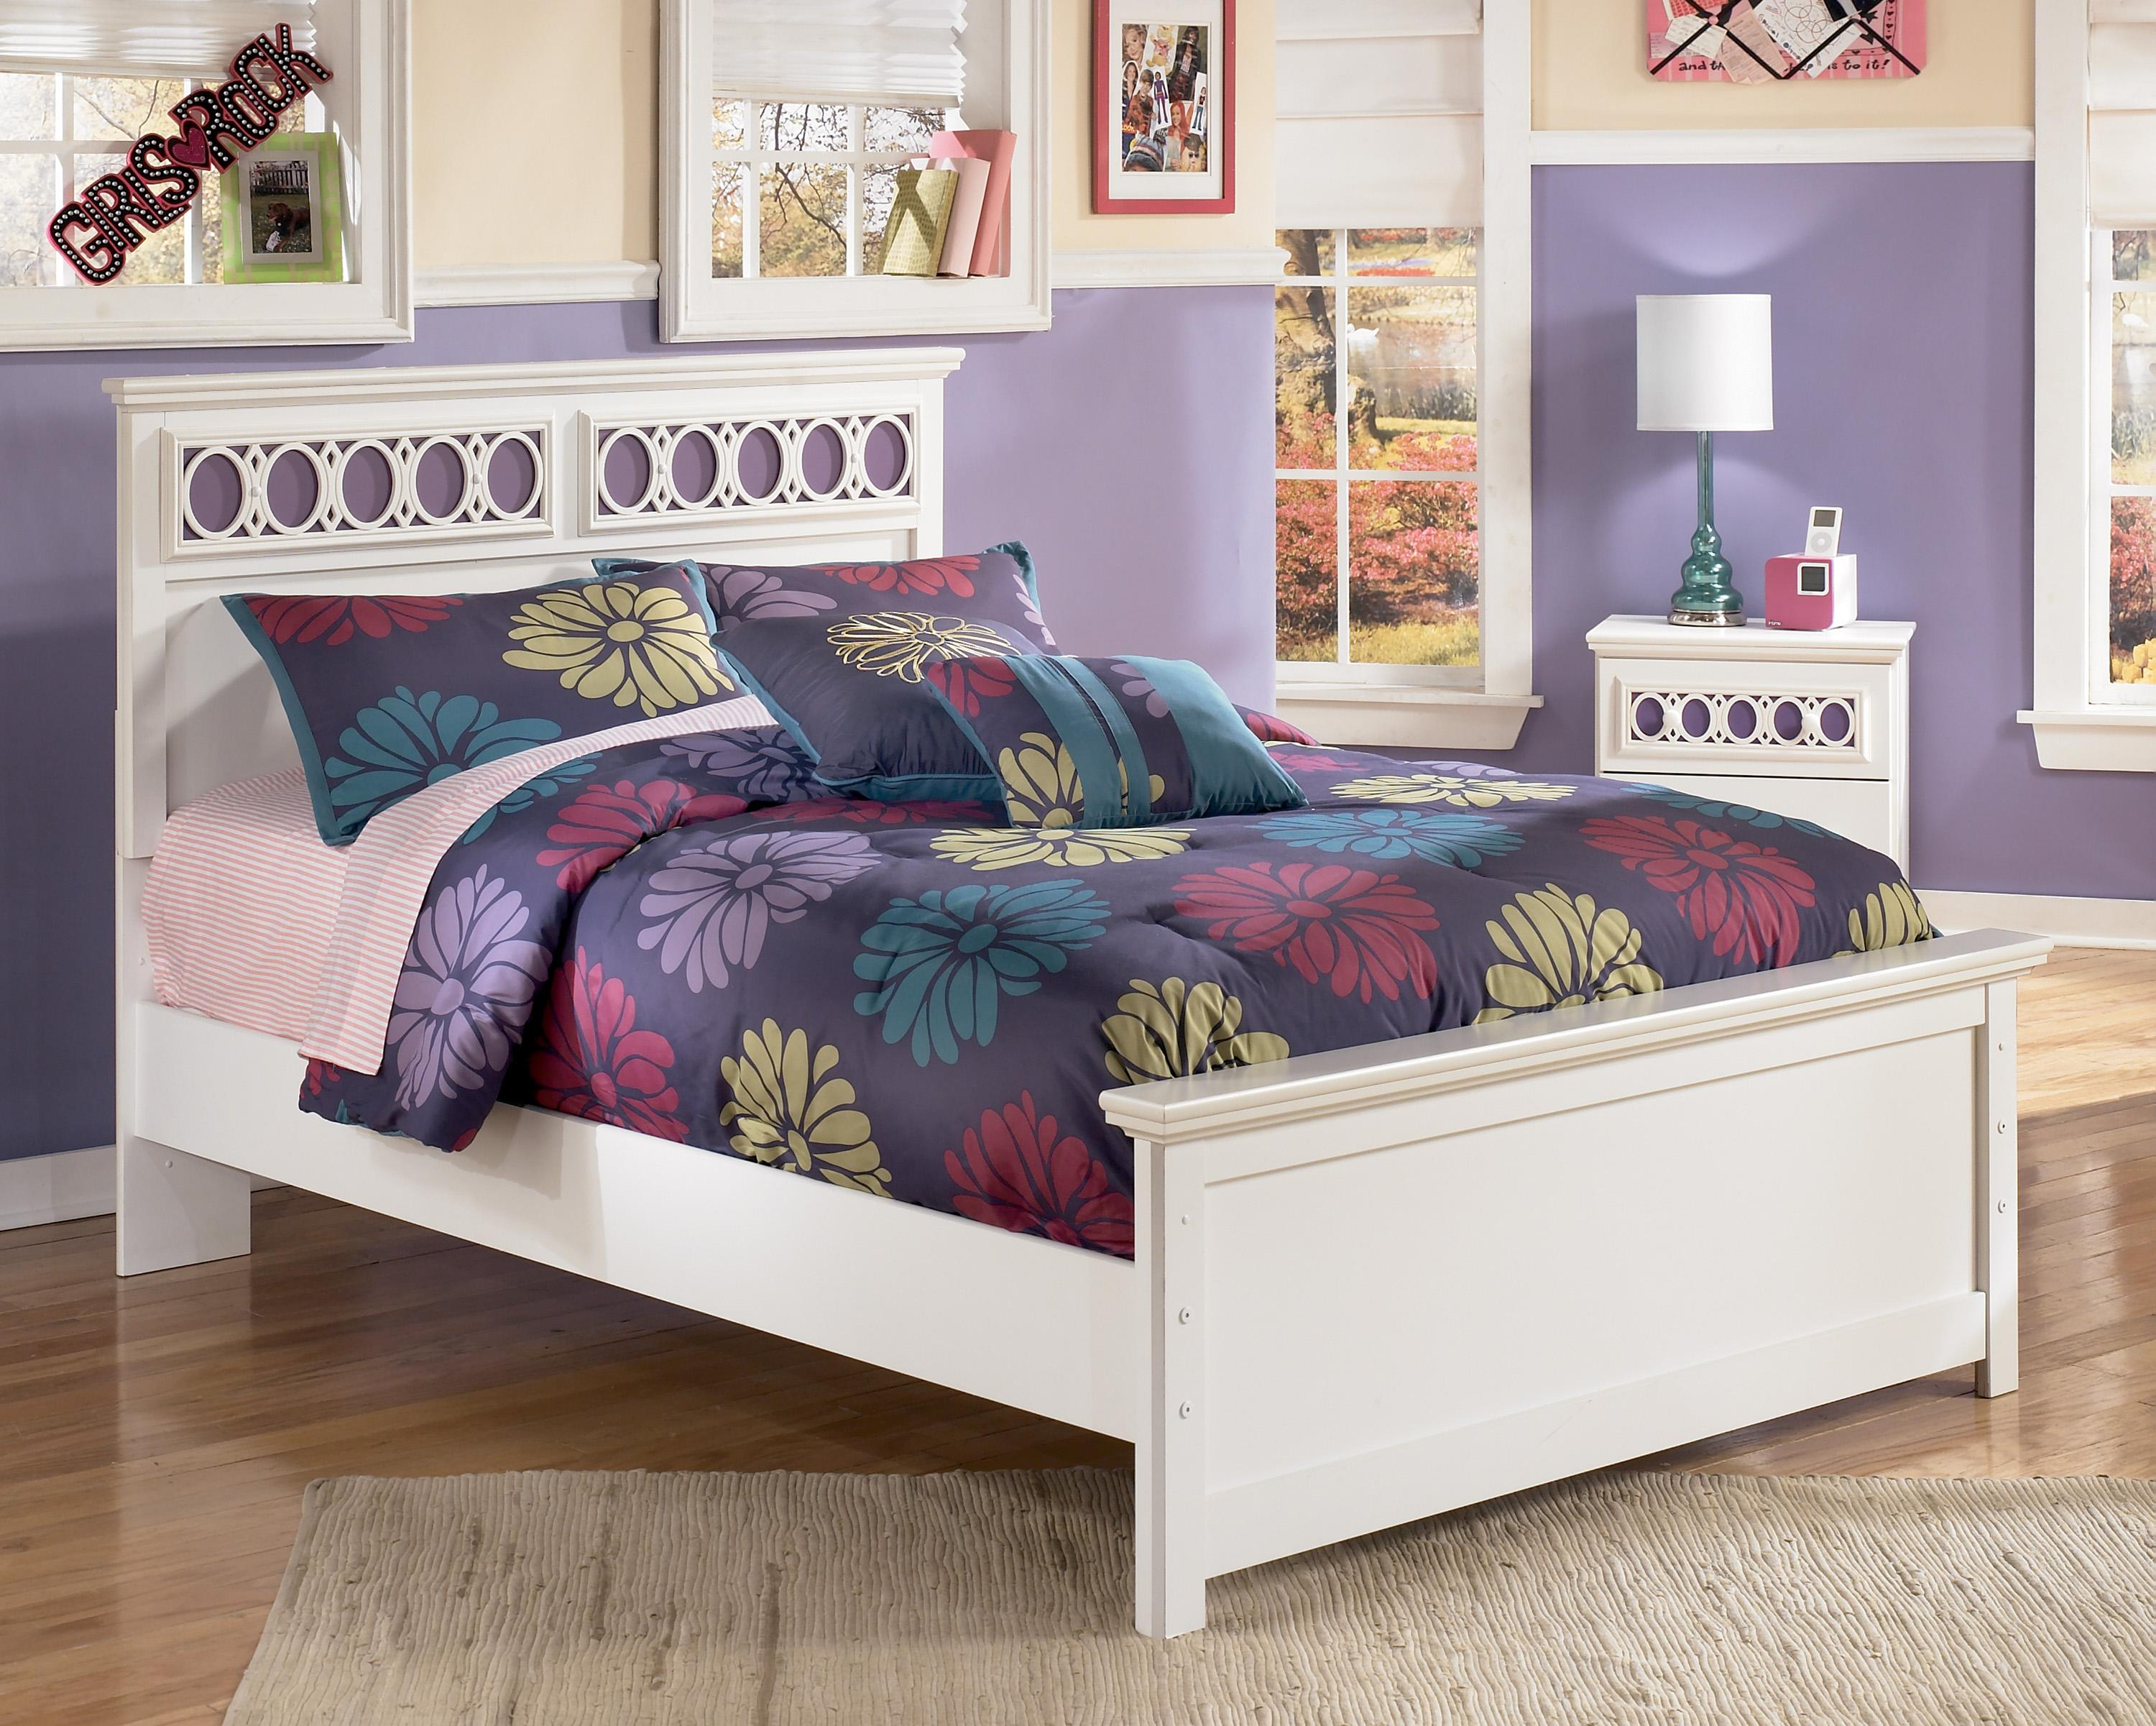 Signature design by ashley zayley full platform bed with - Ashley furniture full bedroom sets ...